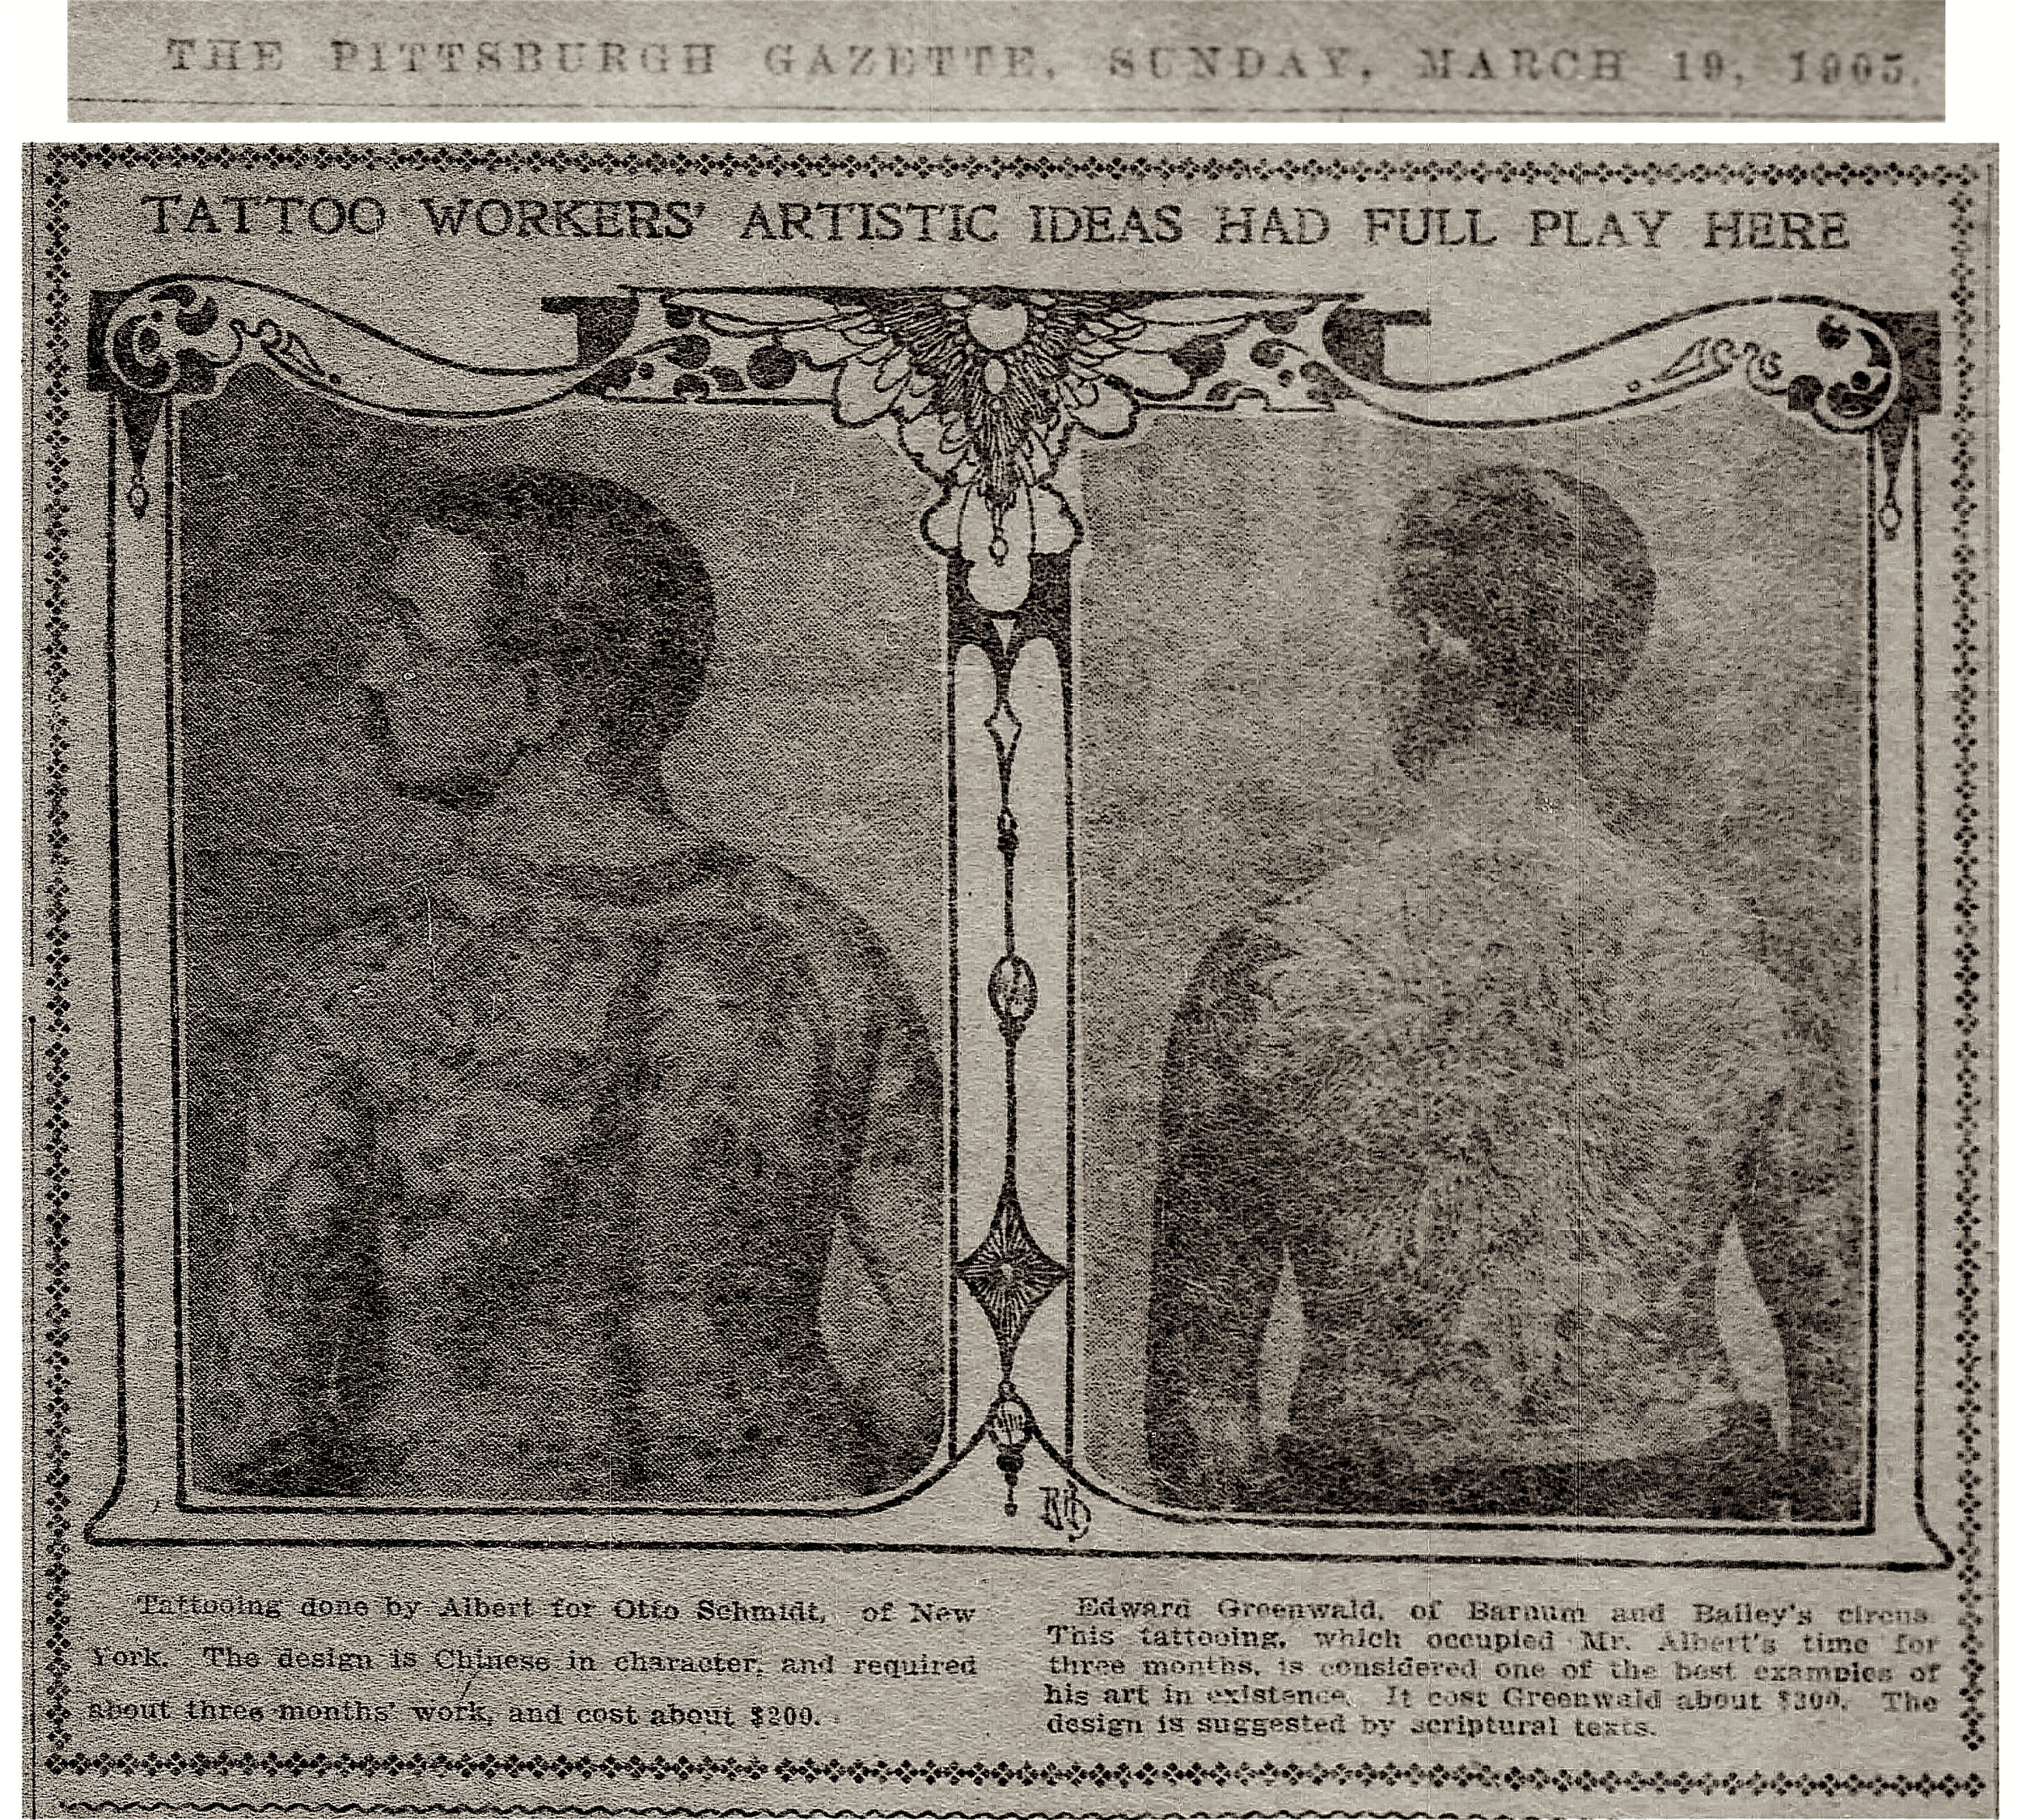 In a 1905 interview, Alberts took credit for tattooing Otto Schmidt, raising the possibility that he had some association with Elmer Getchell at 11 Chatham Square. Alberts also stated that he tattooed Ed Greenwood, whose work is often attributed to Charlie Wagner.  Pittsburgh Weekly Gazette , March 15, 1905.